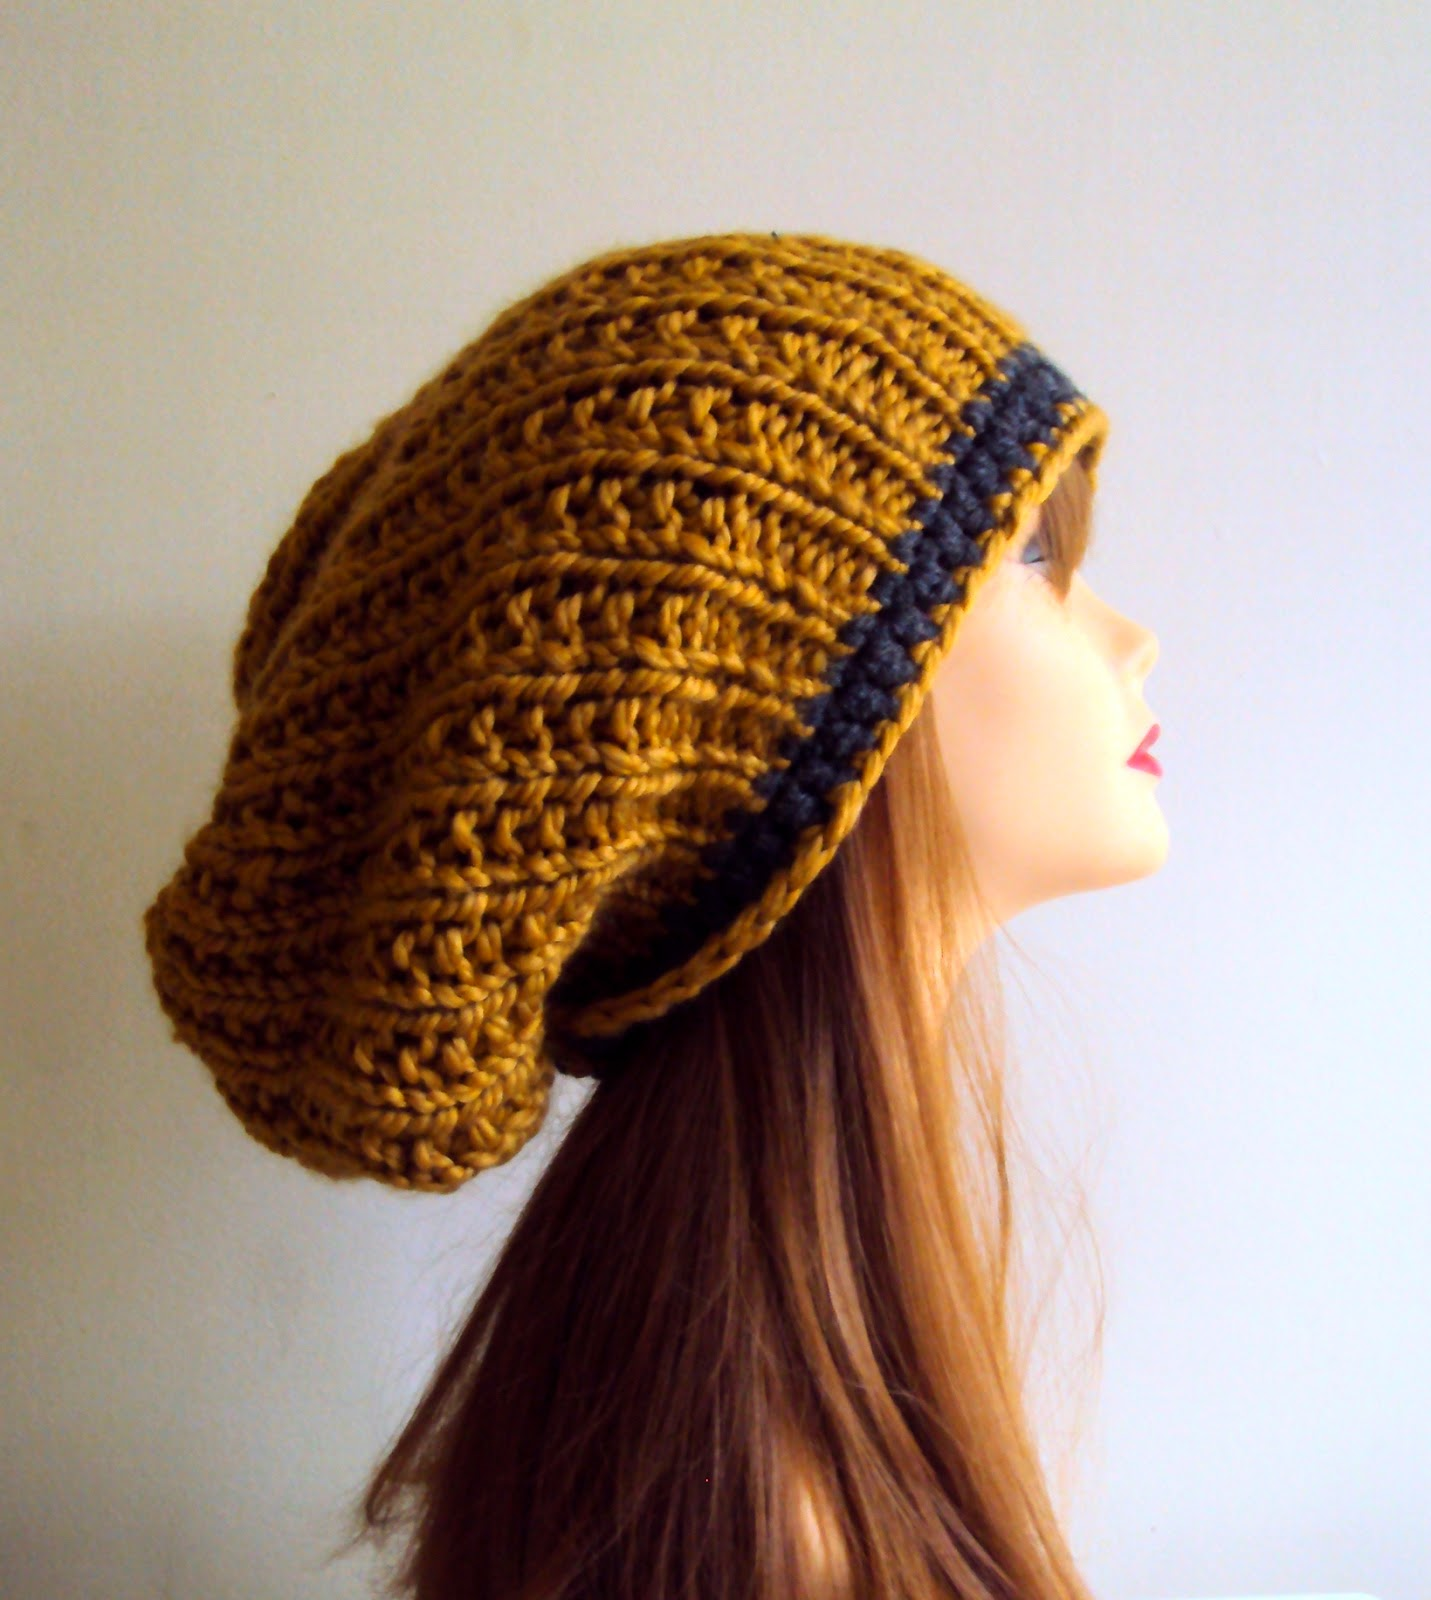 https://www.etsy.com/listing/207021014/sale-super-slouchy-wool-hat-women-knit?ref=shop_home_active_1